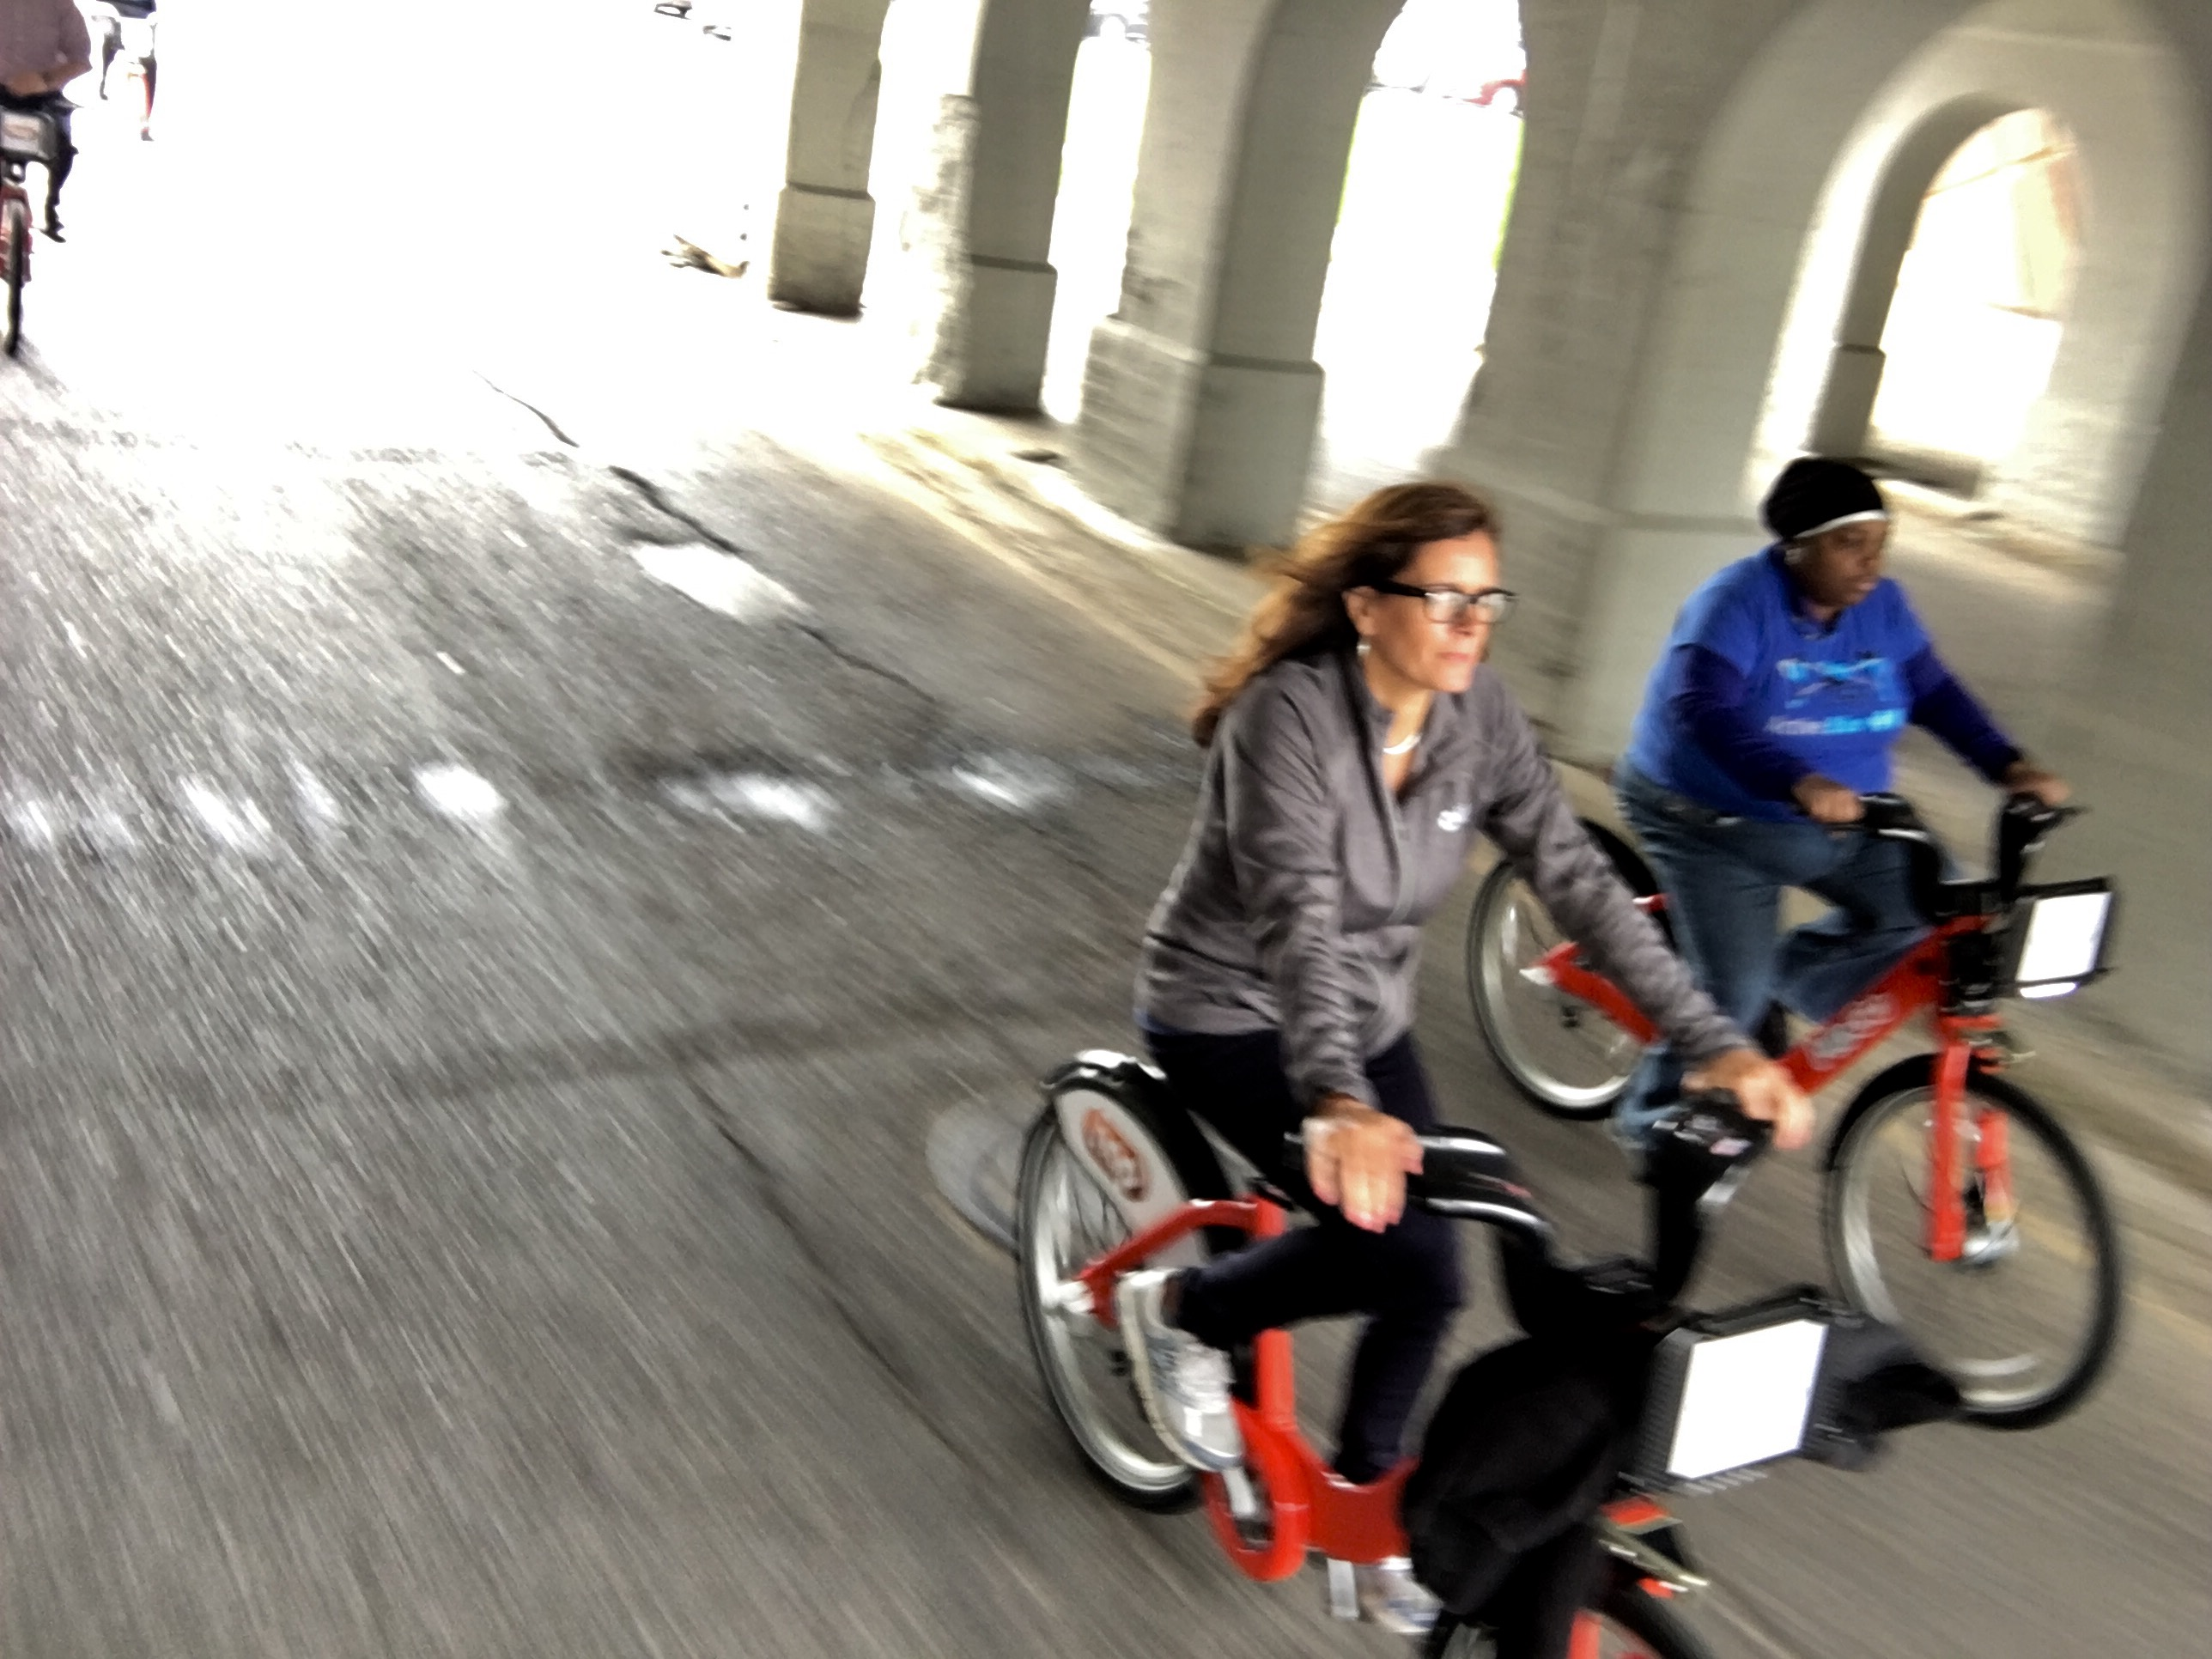 PHOTOS: Launch of Detroit's MoGo bike sharing system another step in city's transformation